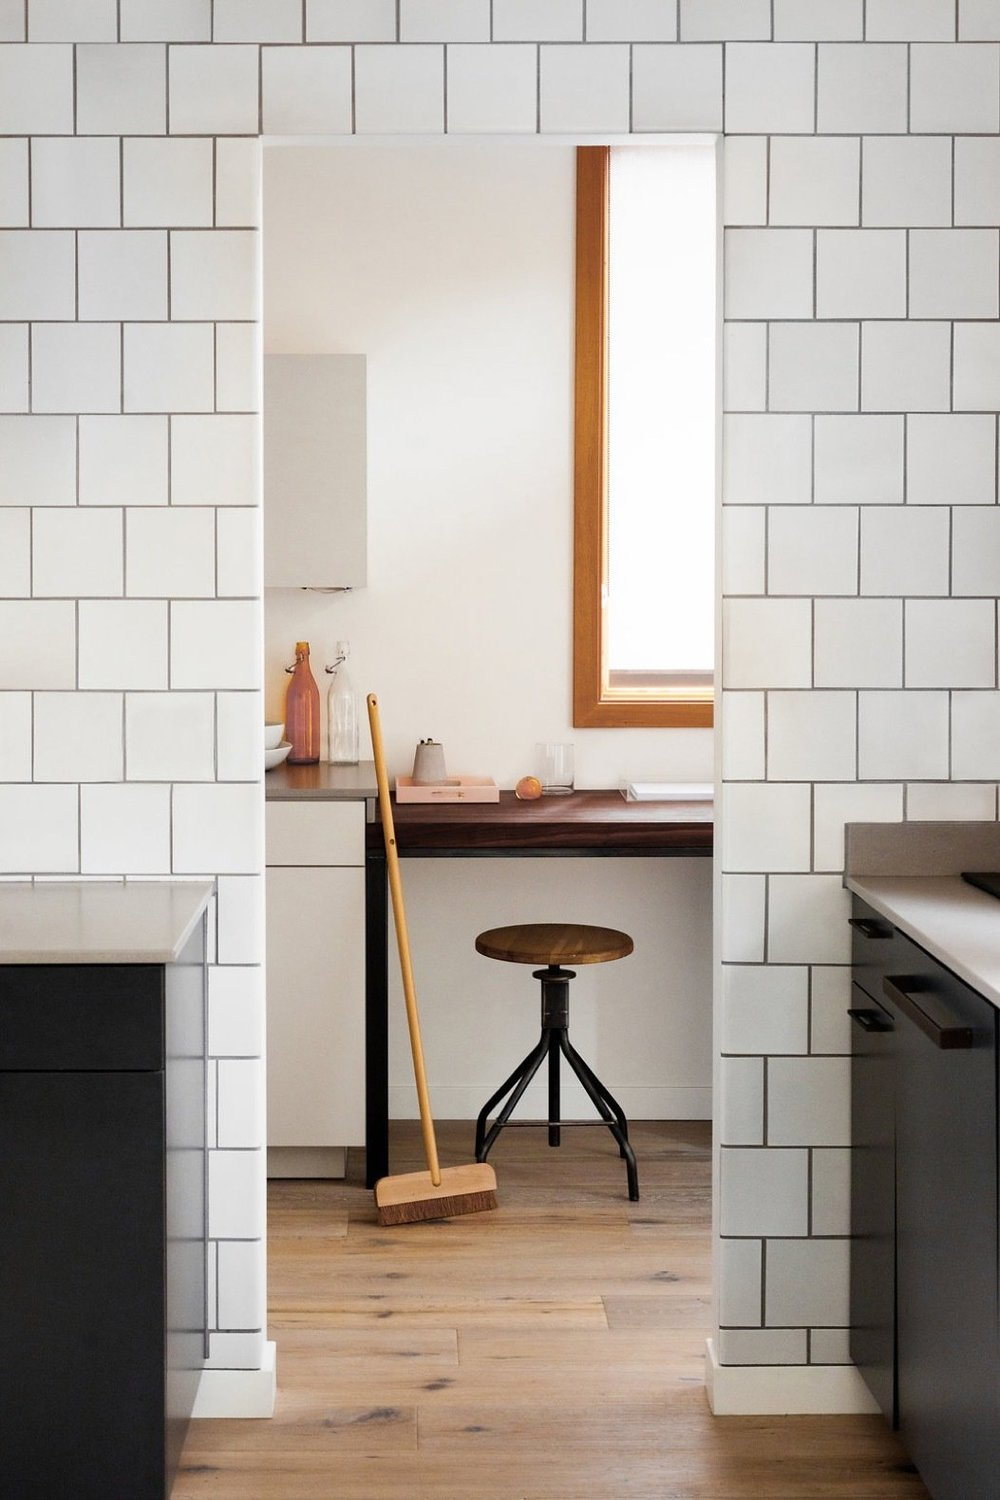 one-wall-of-the-kitchen-is-entirely-clad-in-heath-ceramics-tile-with-a-highly-irregular-glaze.jpg